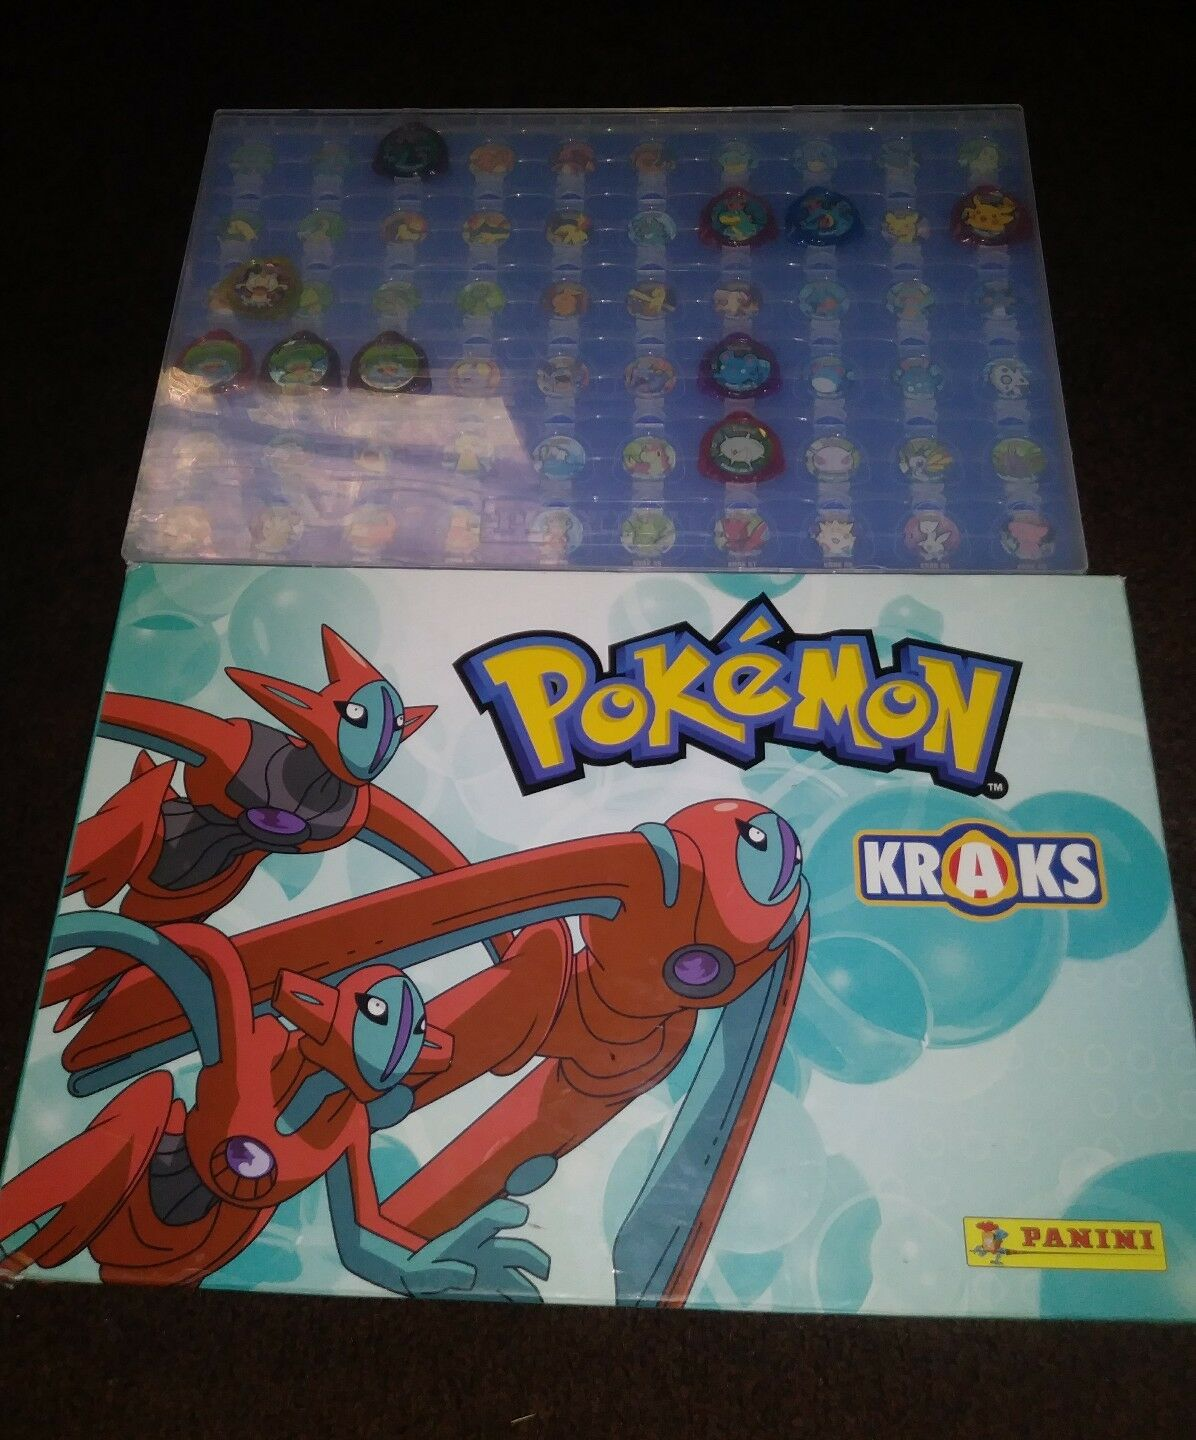 Pokemon Kraks Panini Board With X18 Kraks 2005 Picachu Rare Freeshipping